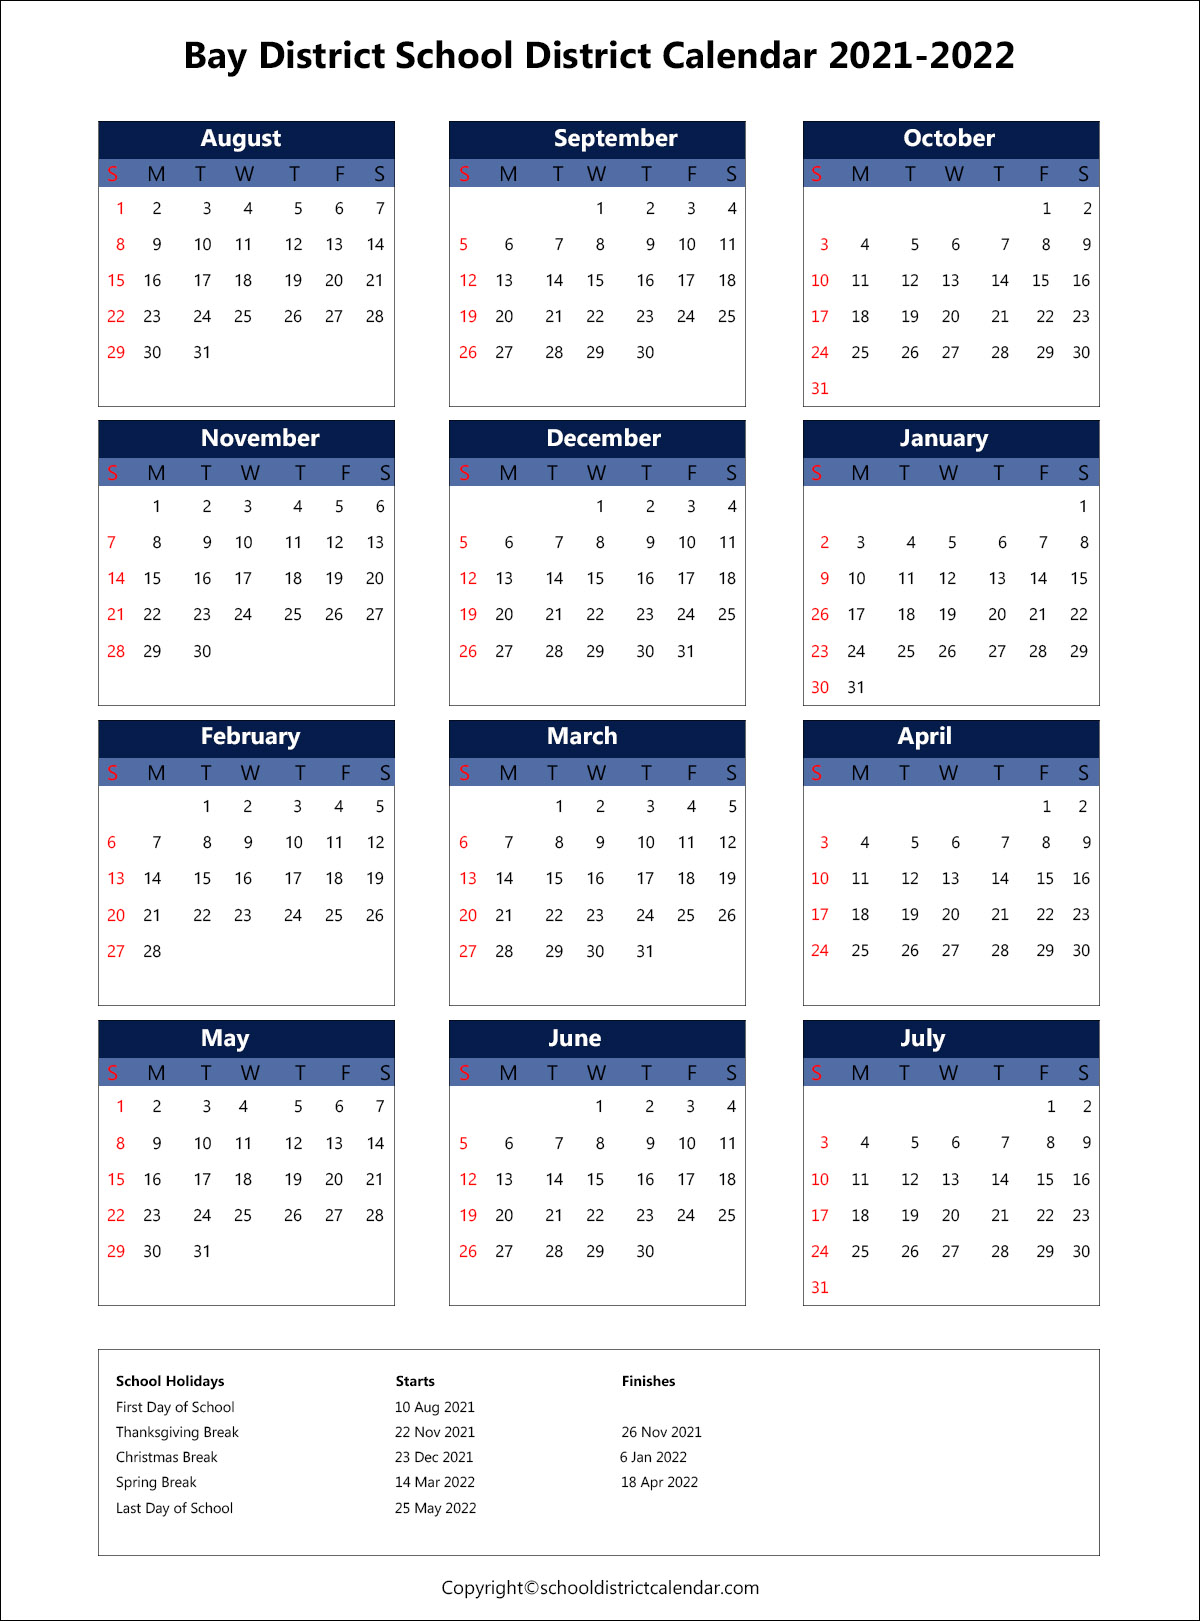 Bay District Schools Calendar 2021